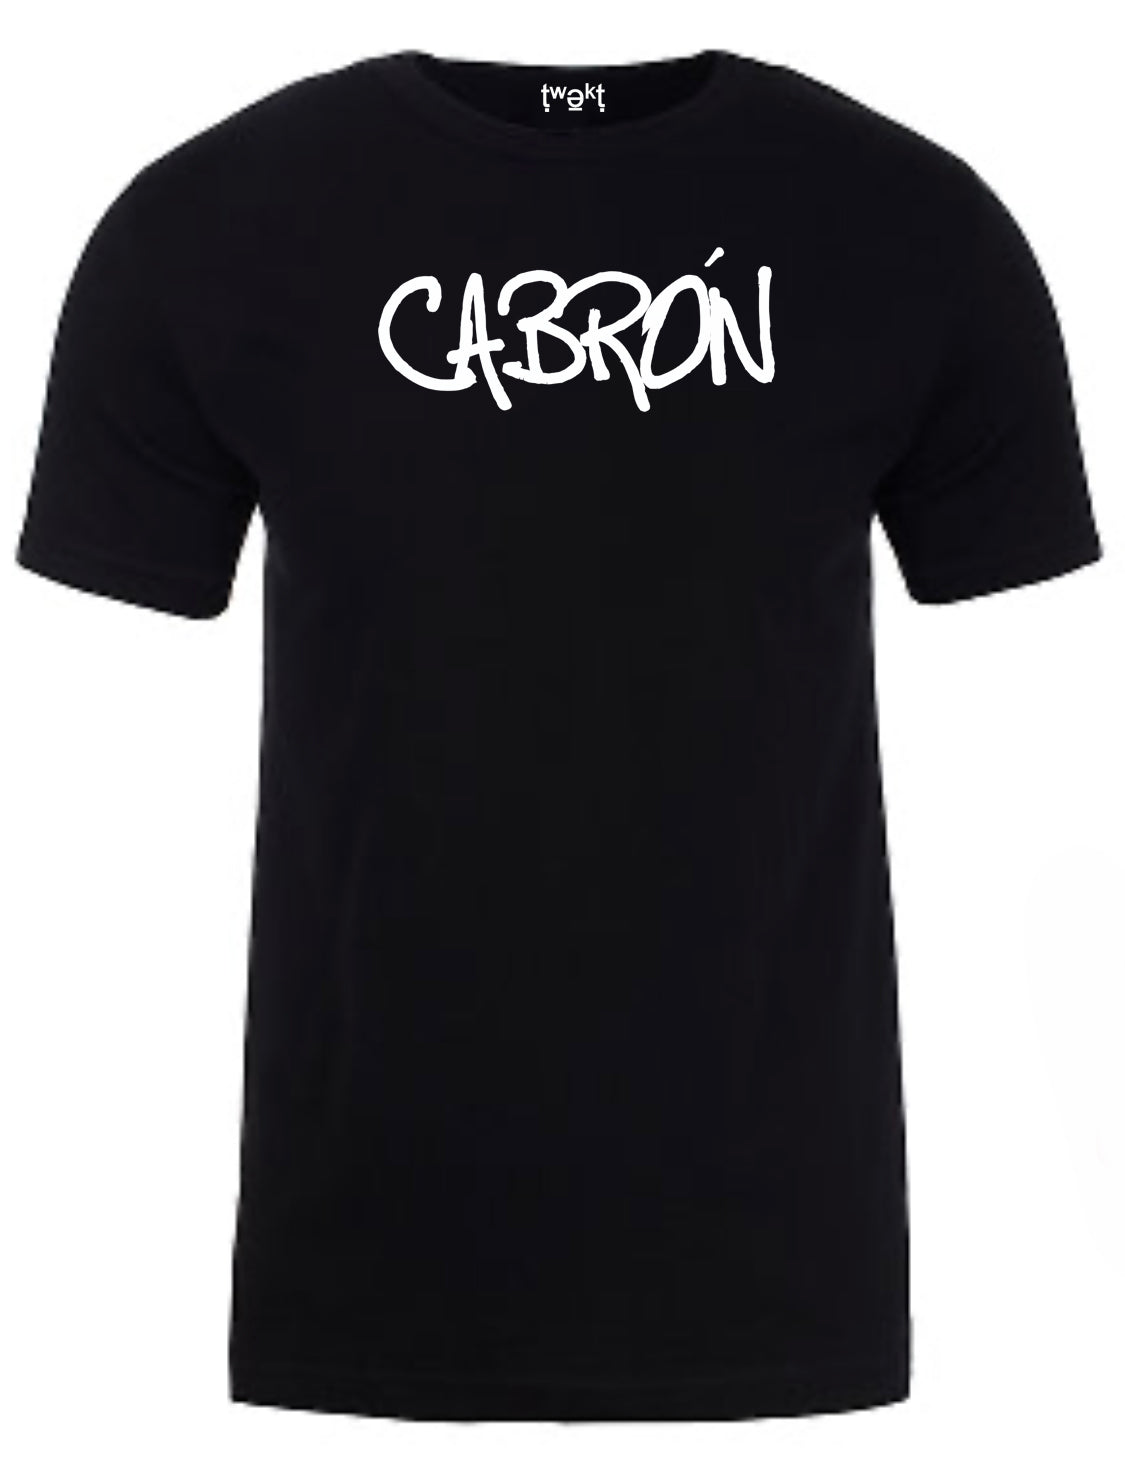 Cabrón Men T-shirt